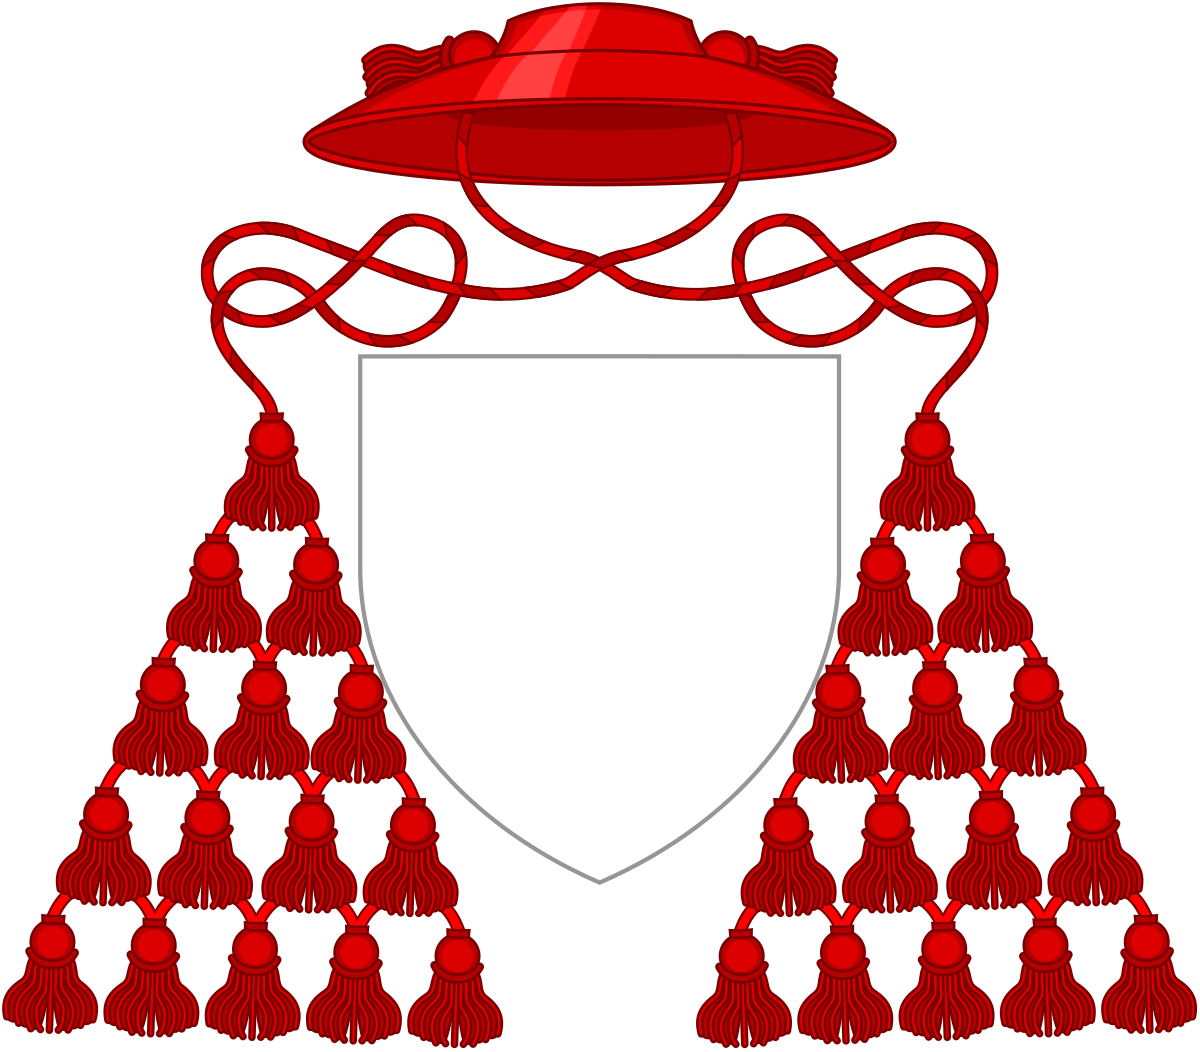 Office of the bishop of new hampshire clipart clip art library Cardinal (Catholic Church) - Wikipedia clip art library